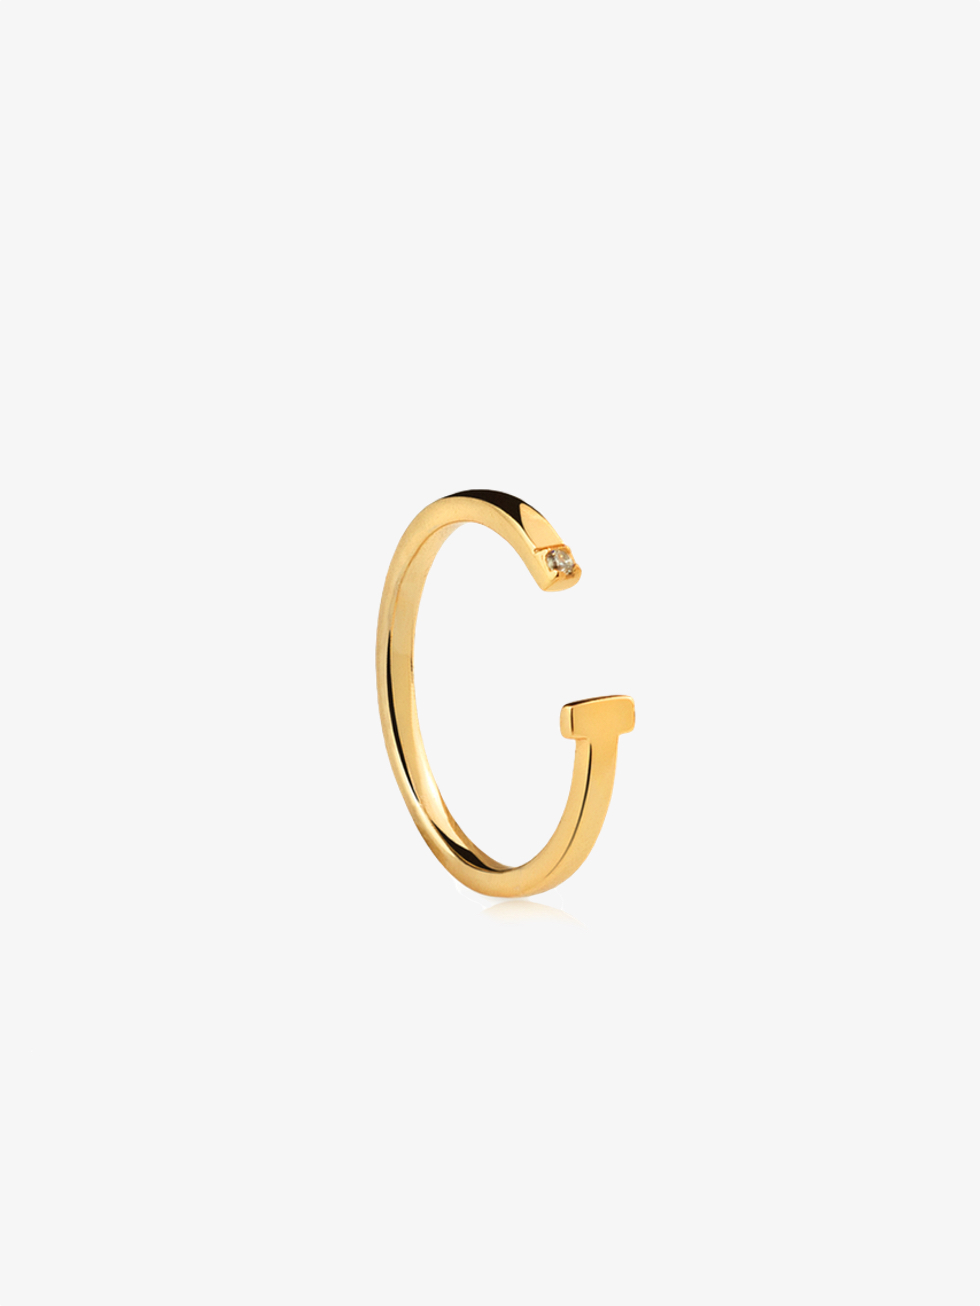 OTAWA gold ring